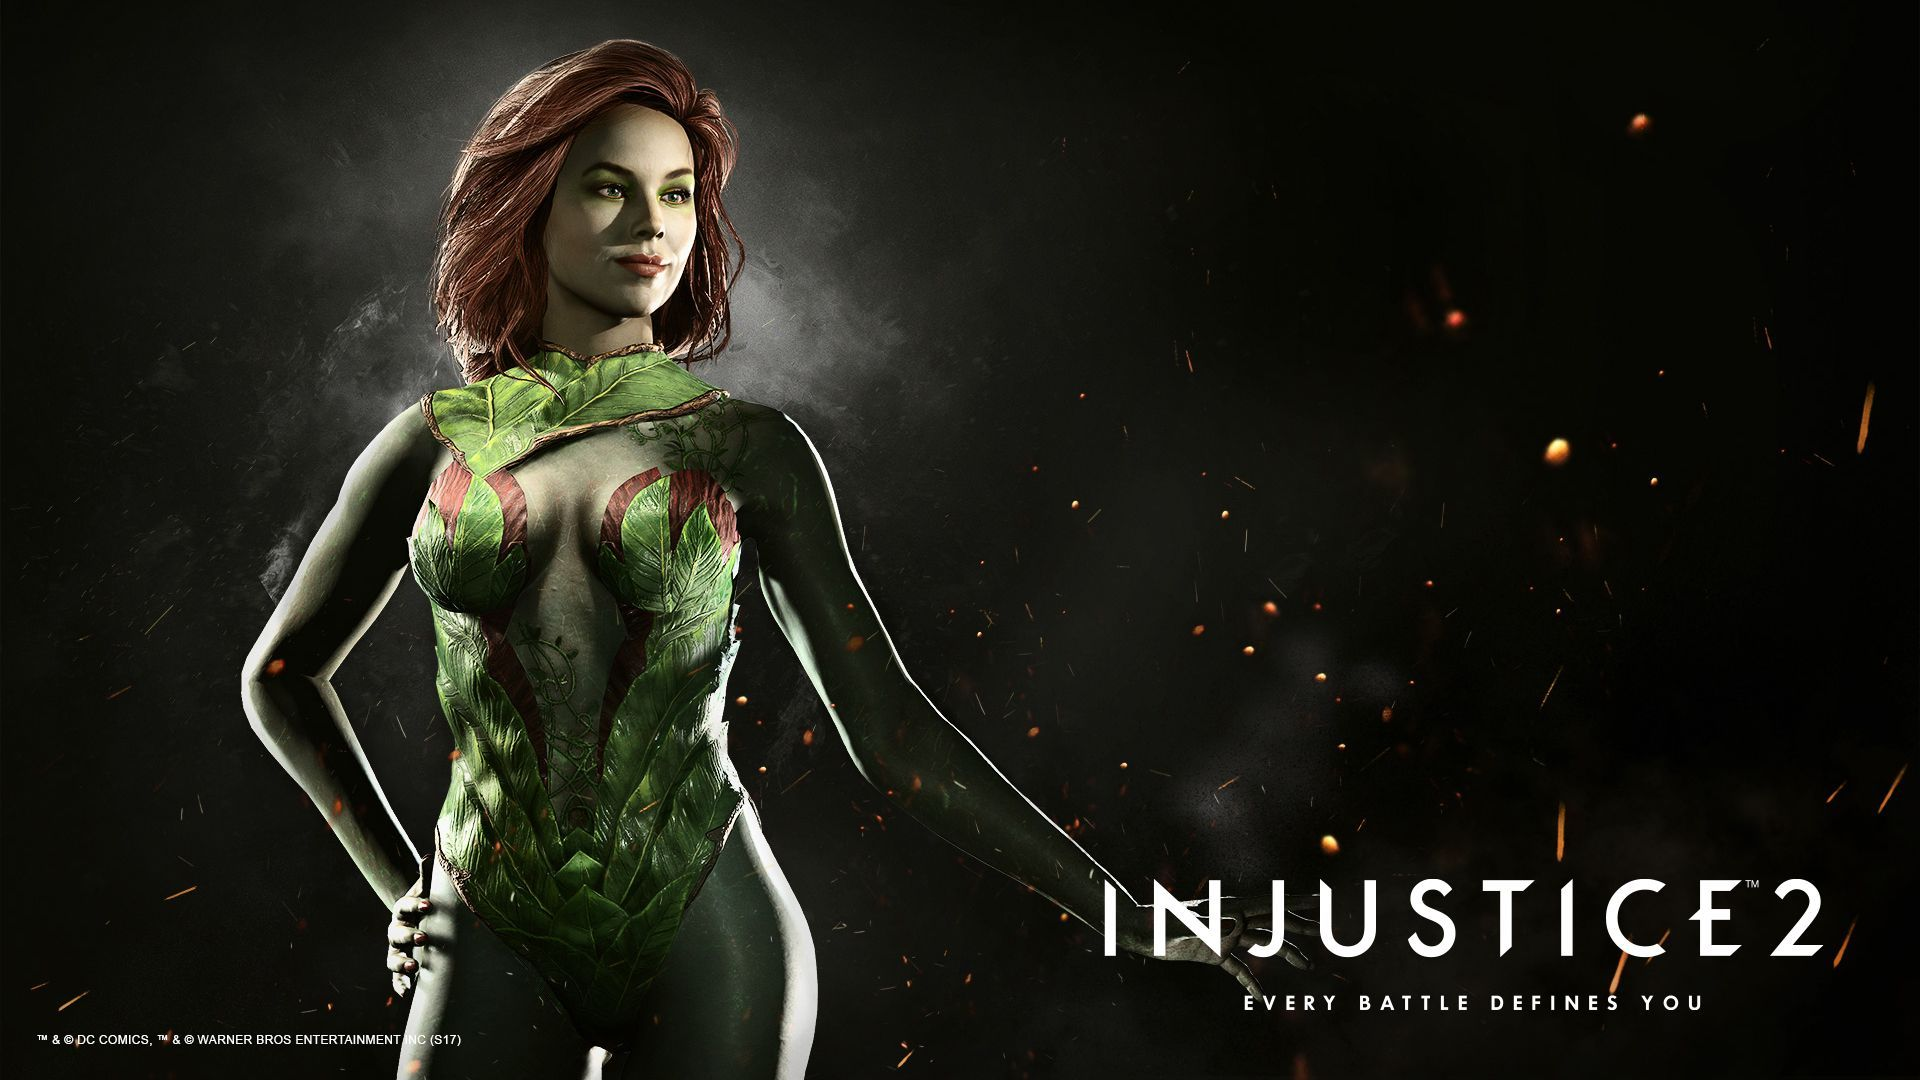 1920x1080 Poison Ivy. Wallpaper from Injustice 2 | gamepressure.com